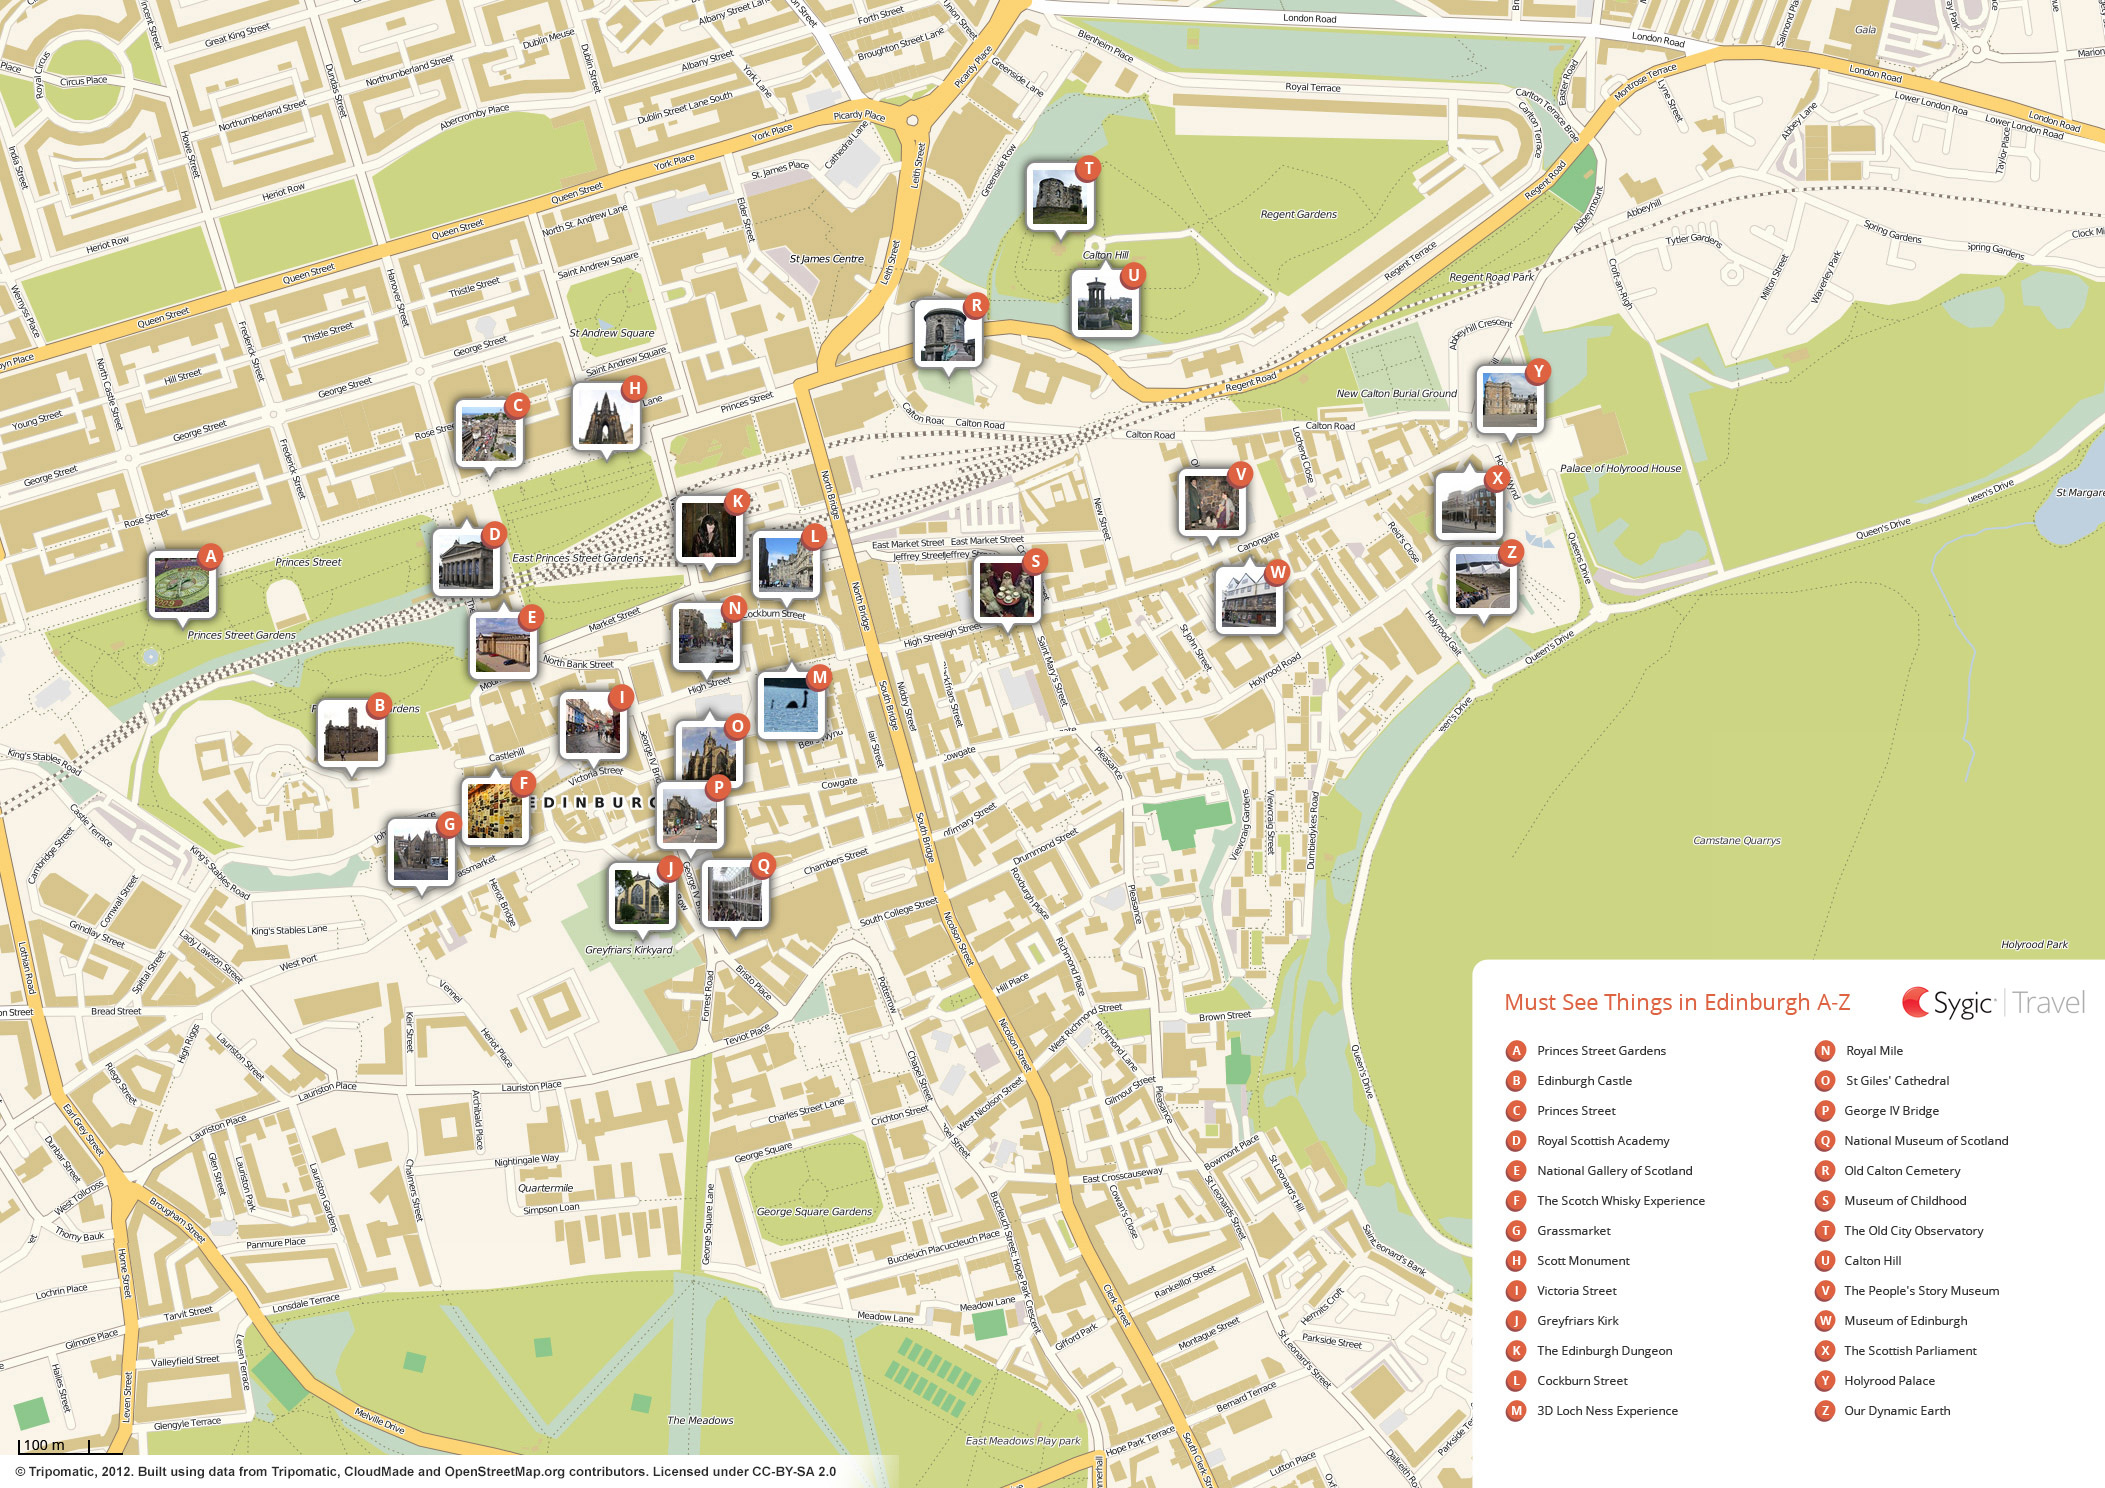 Edinburgh Printable Tourist Map – Amsterdam Tourist Attractions Map